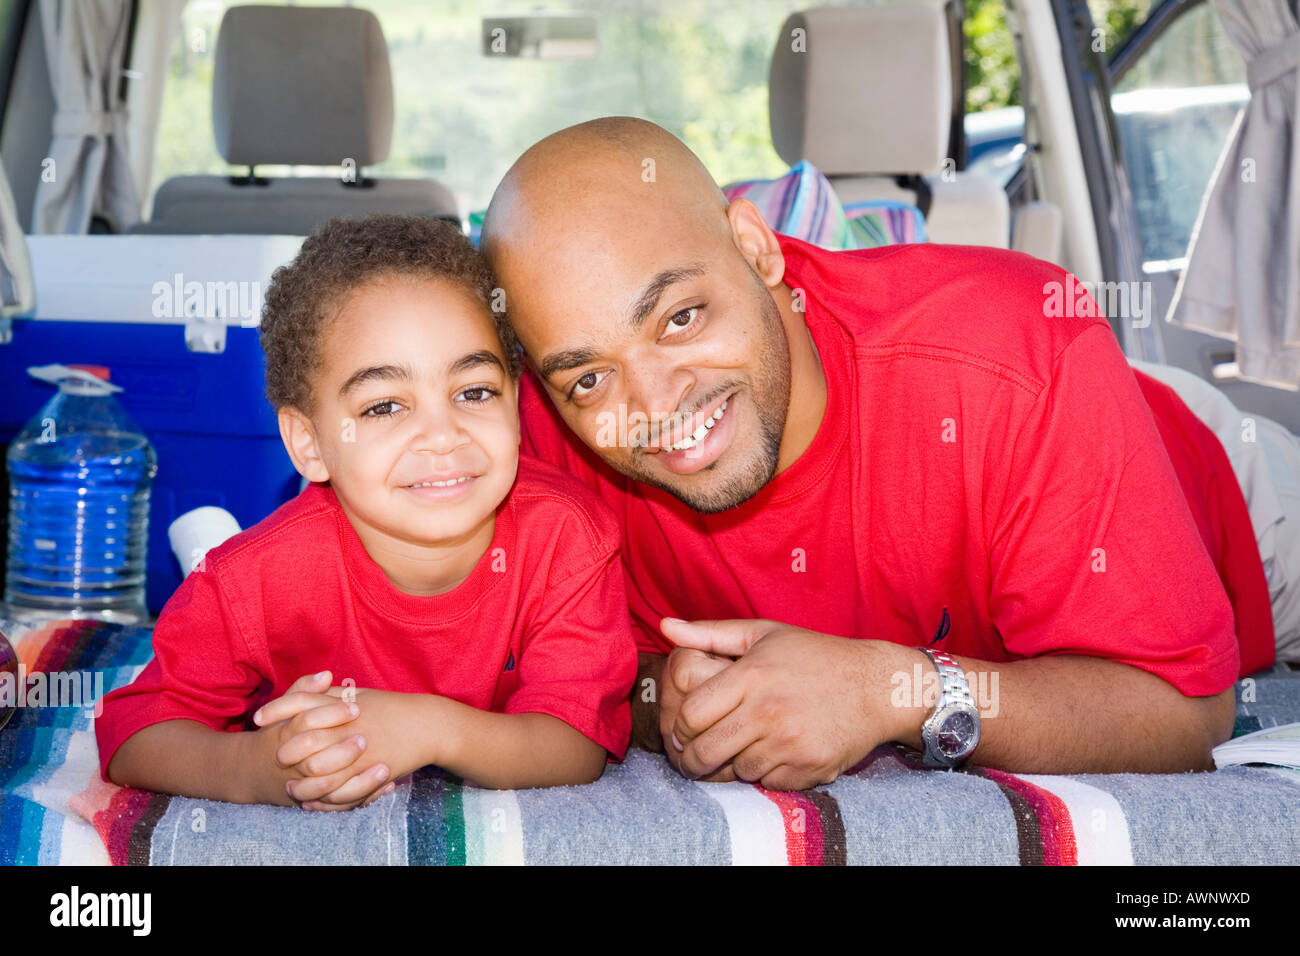 Father and son sitting in trunk of car with camping gear - Stock Image